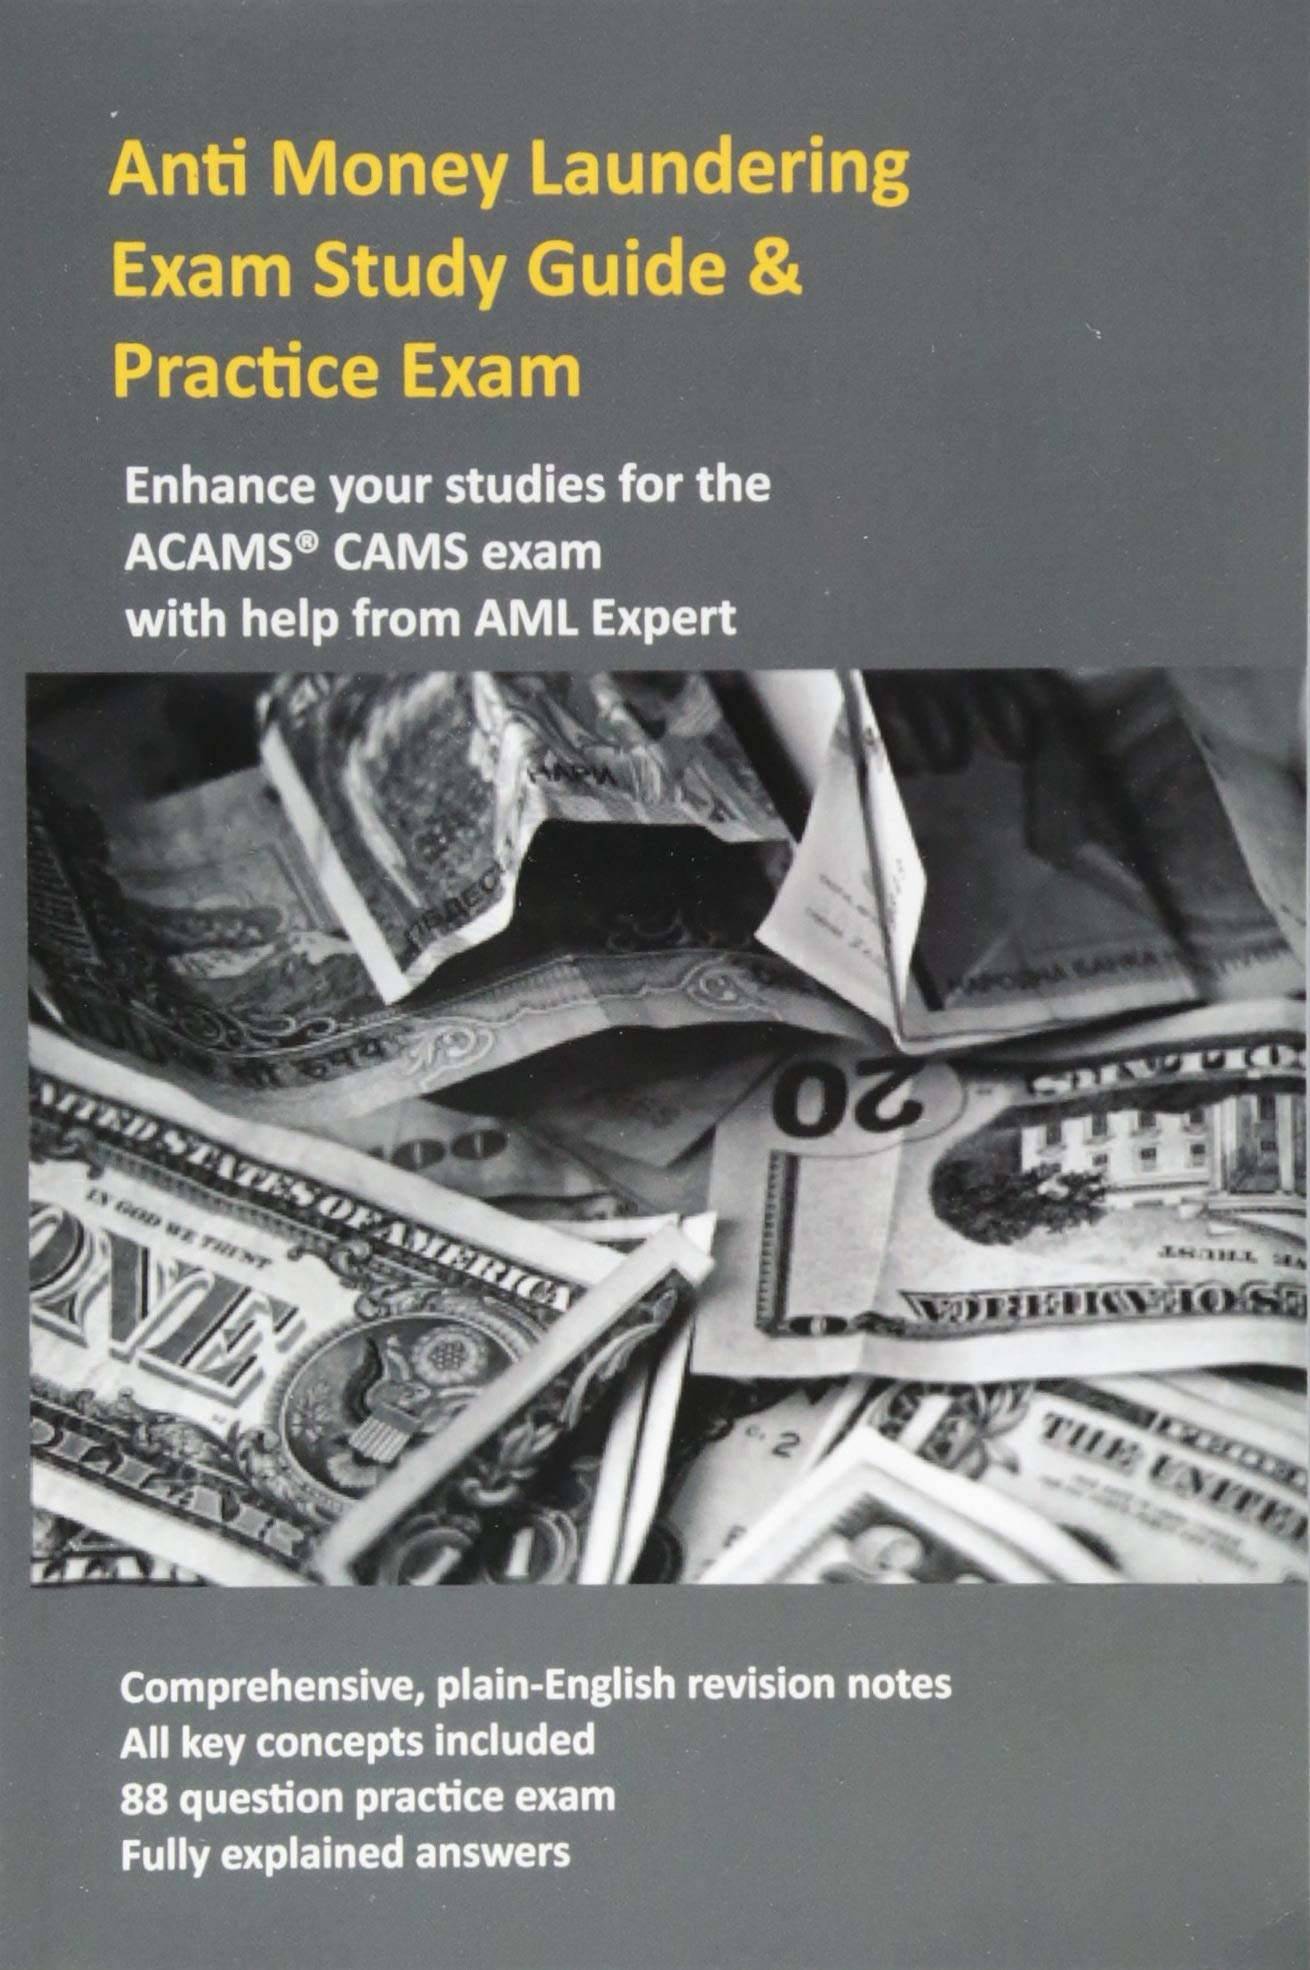 Anti Money Laundering Exam Study Guide & Practice Exam